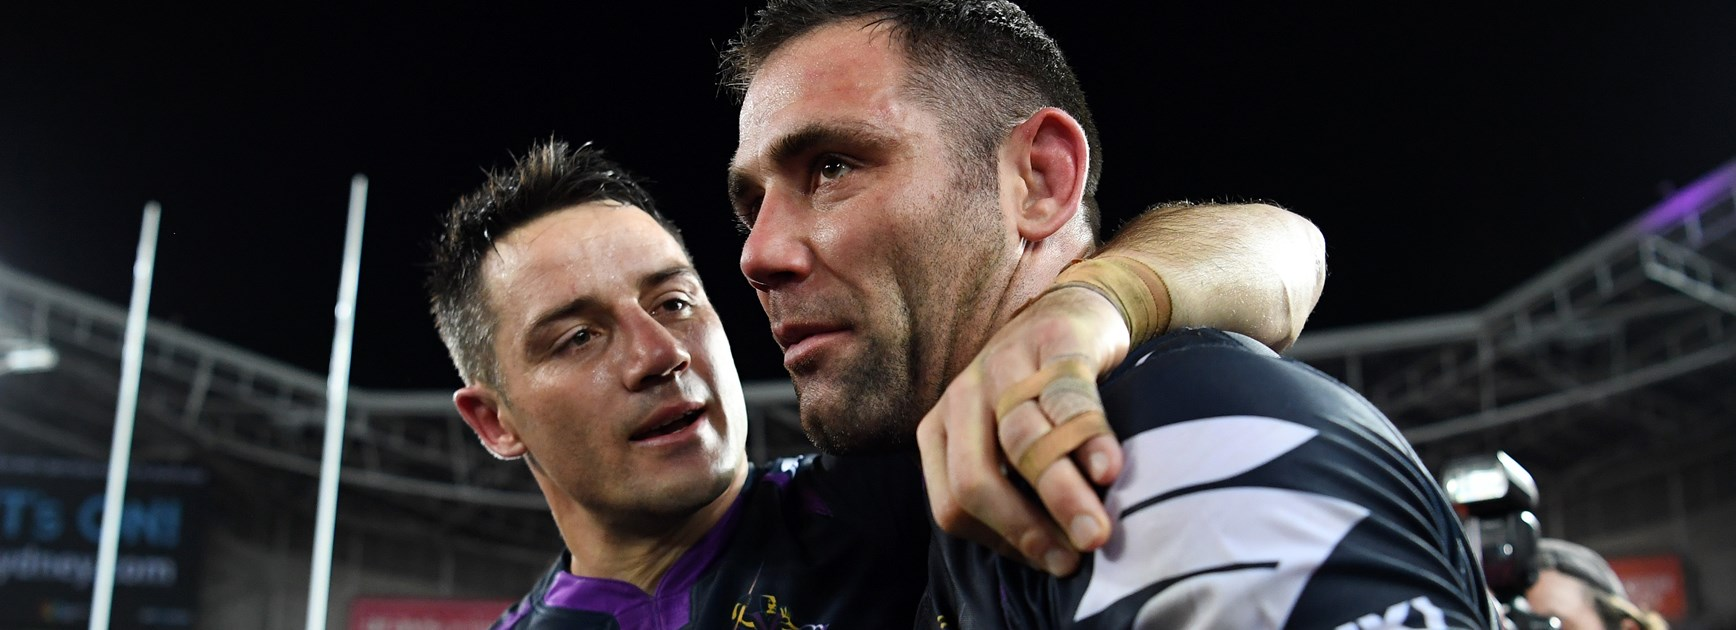 'There's no player I respect more': Cronk buries talk of rift with Smith